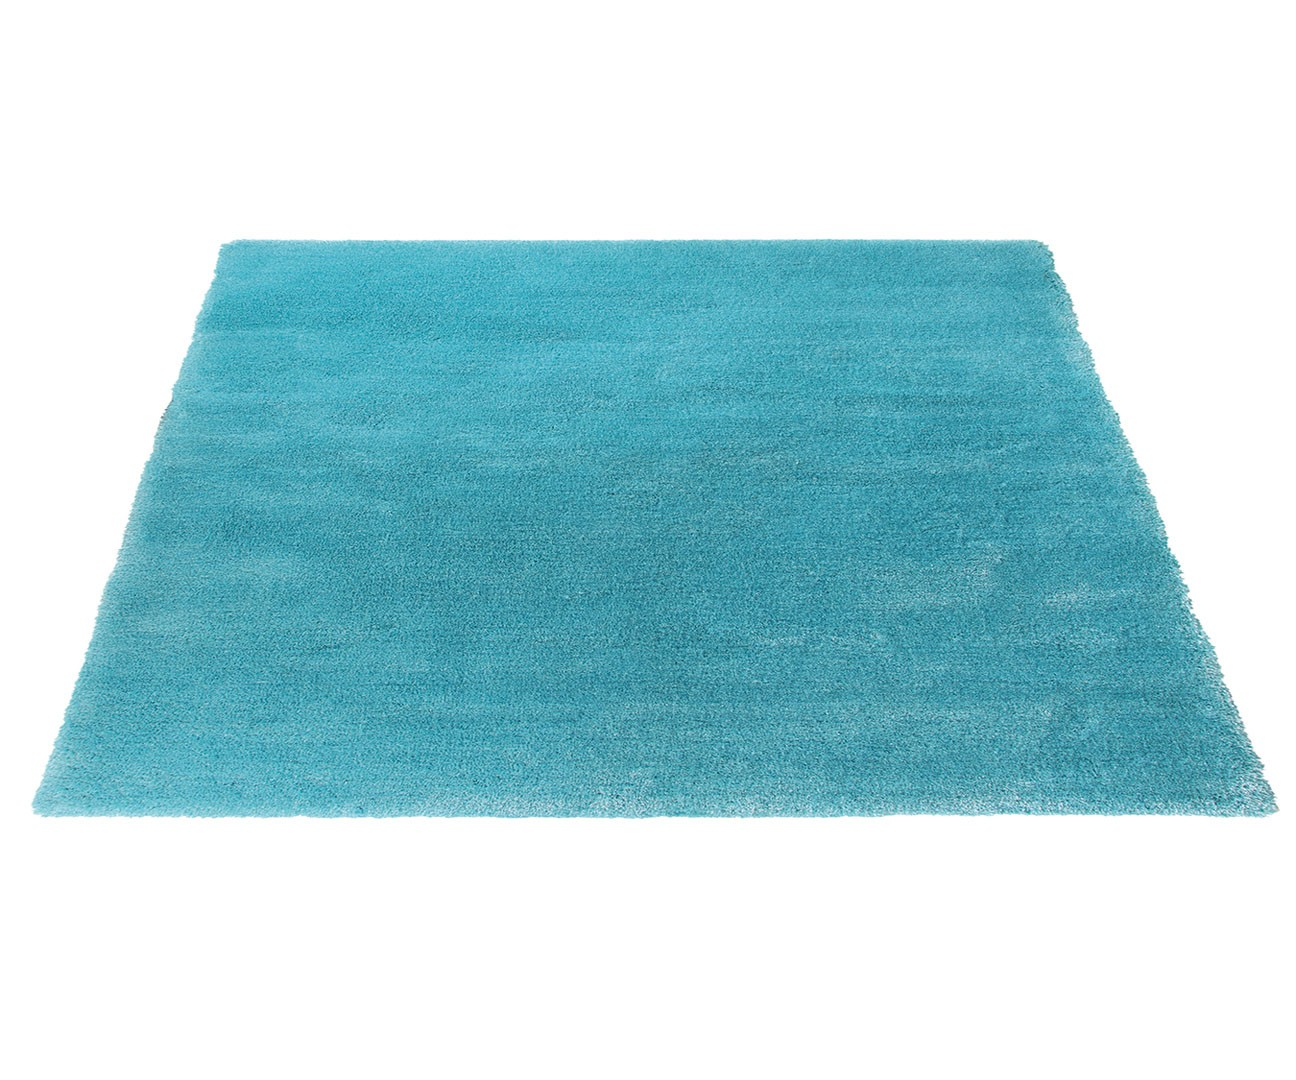 tapis bleu turquoise chambre 8 id es de d coration int rieure french decor. Black Bedroom Furniture Sets. Home Design Ideas